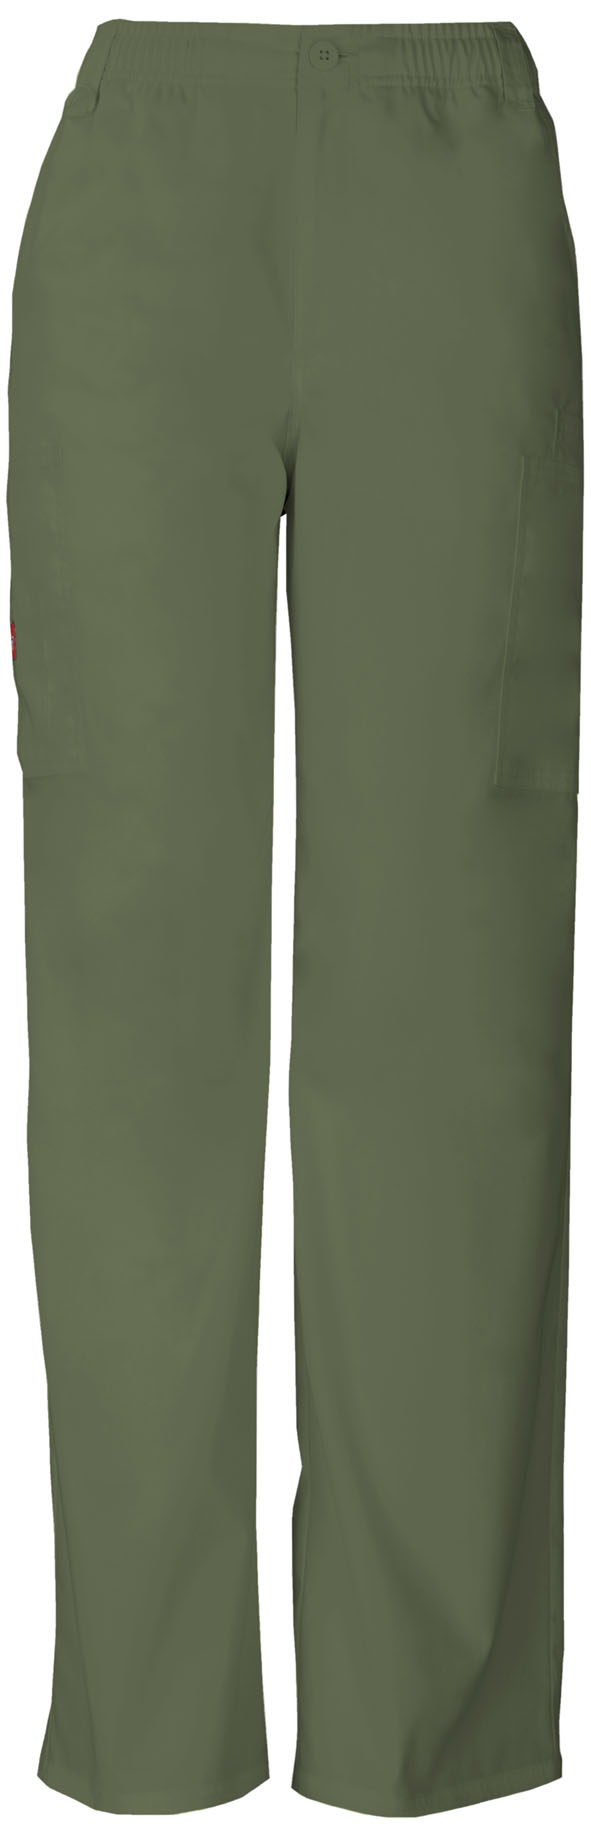 ccc61495fbe Dickies Men's Zip Fly Pull-On Pant - 81006 | Murse World